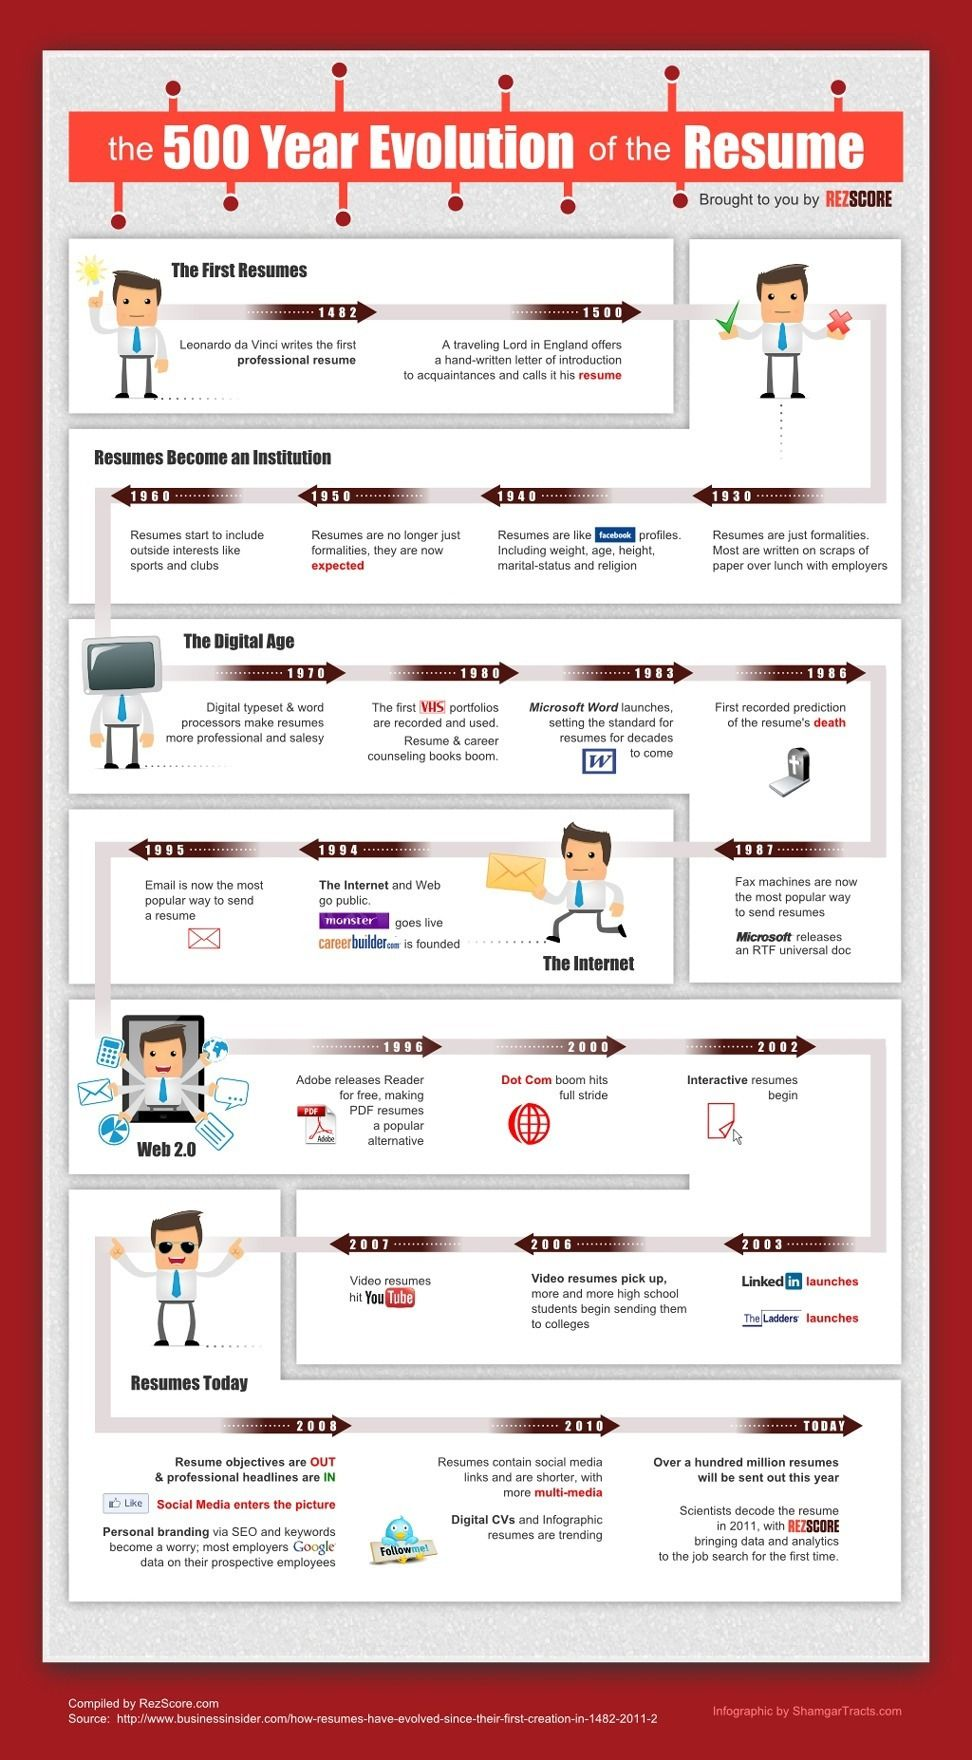 The Modern History Of The Resume Infographic  Infographic